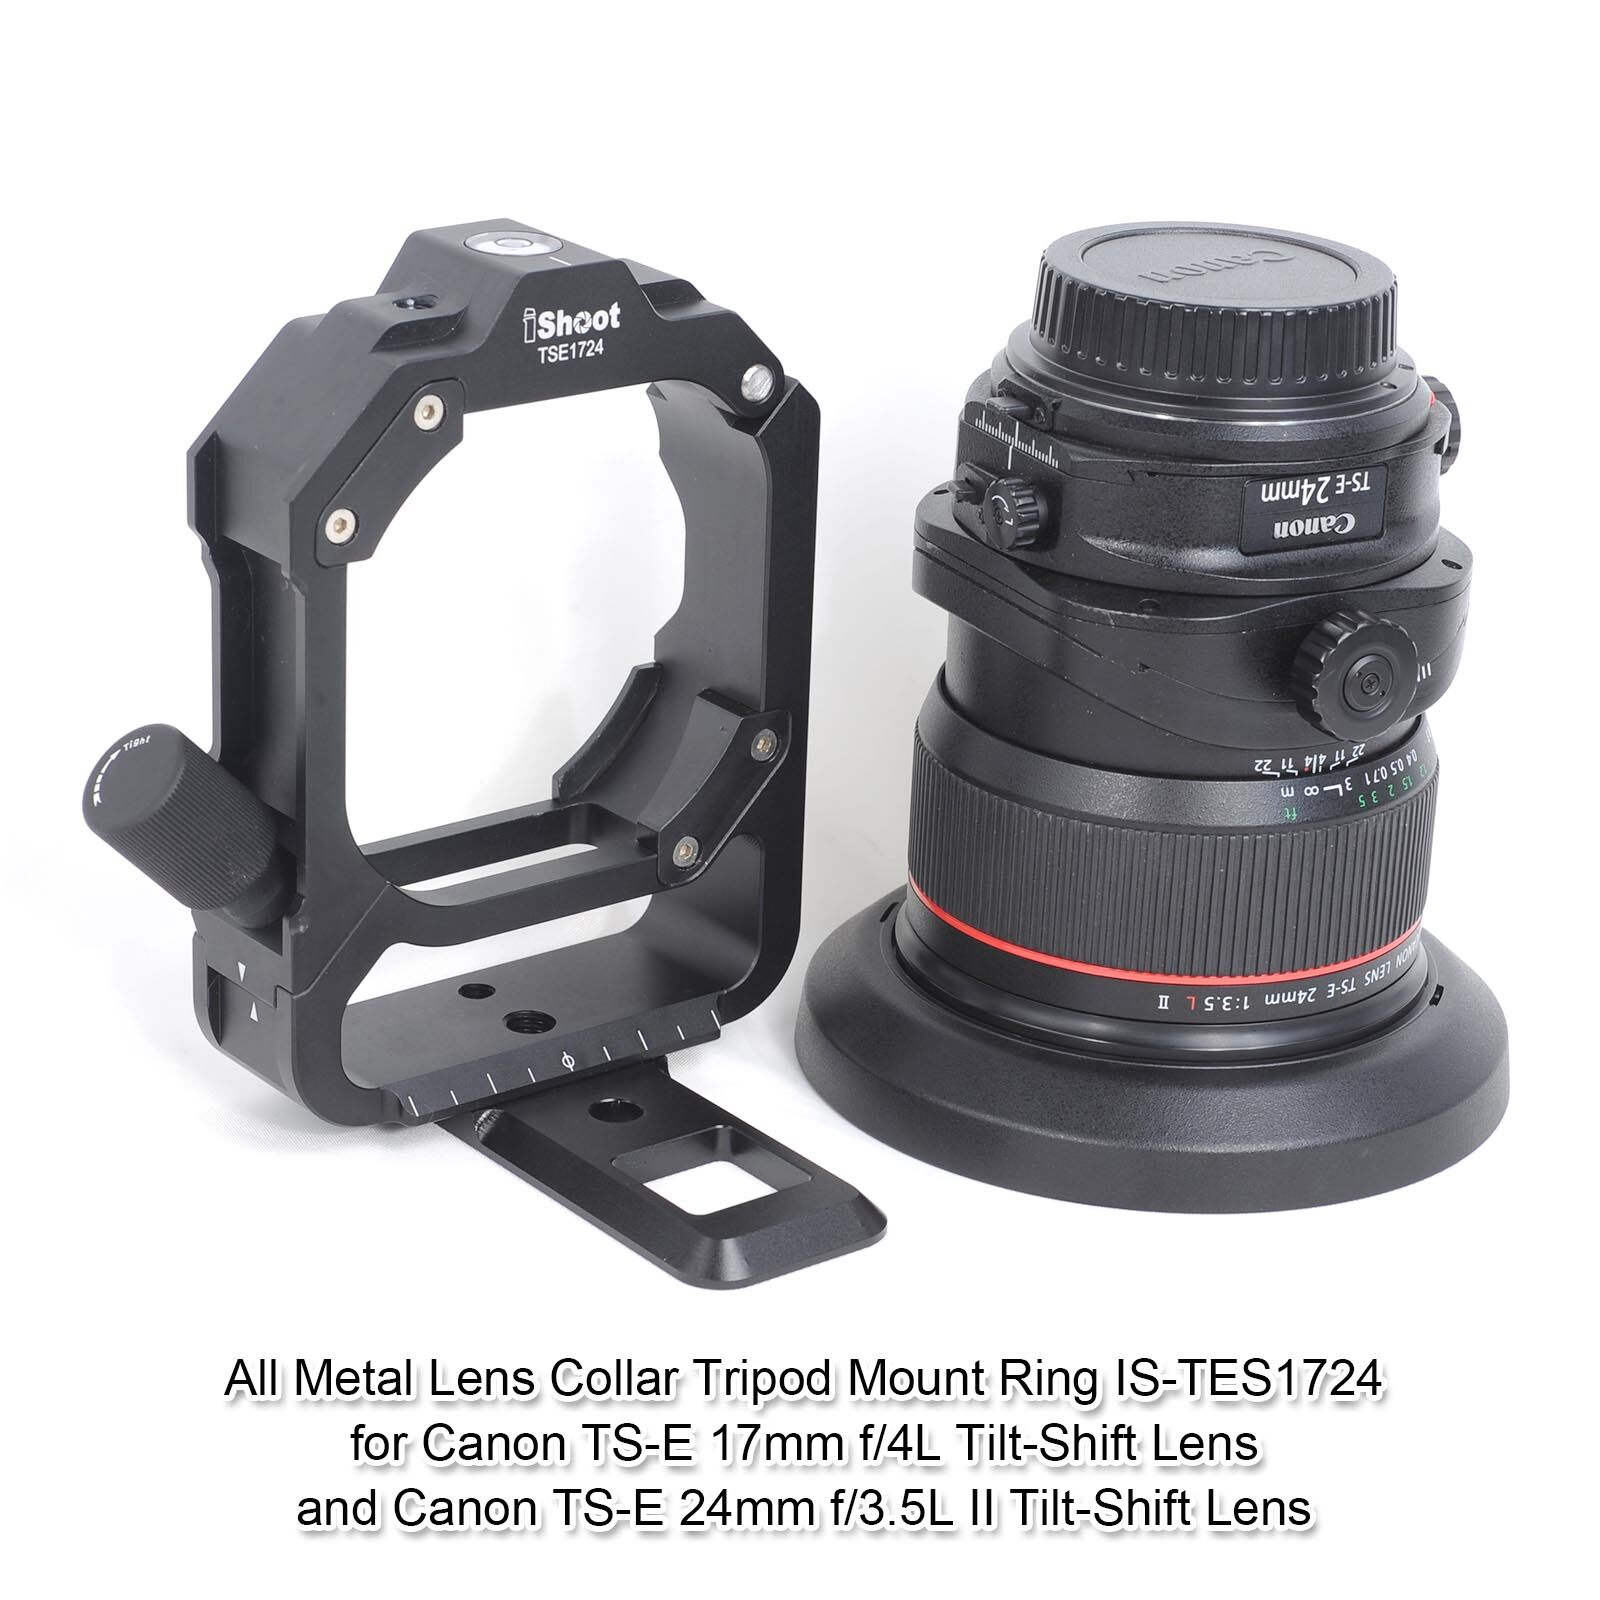 Camera Lens Collar Support for Canon TS-E 17mm f//4L Tilt-Shift Lens and Canon TS-E 24mm f//3.5L II Tilt-Shift Lens Tripod Mount Ring Built-in Arca-Swiss Quick Release Plate for Tripod Ball Head